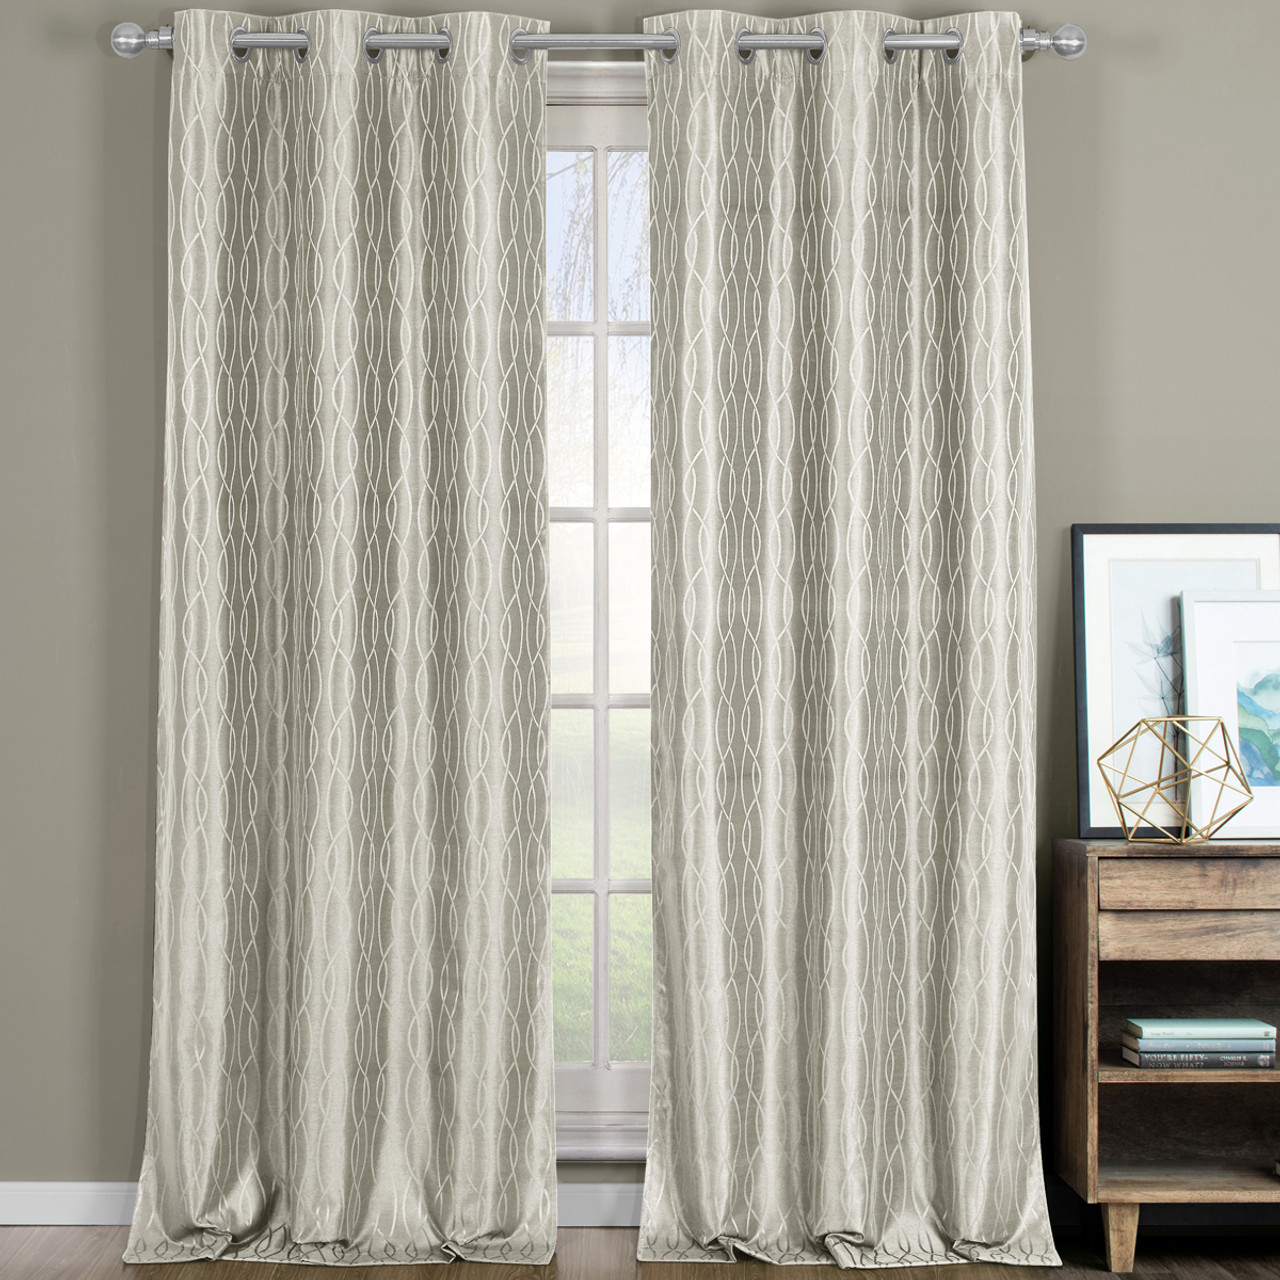 Best Drapes Voyage Thermal Blackout Curtains With Grommets Set Of 2 Panels